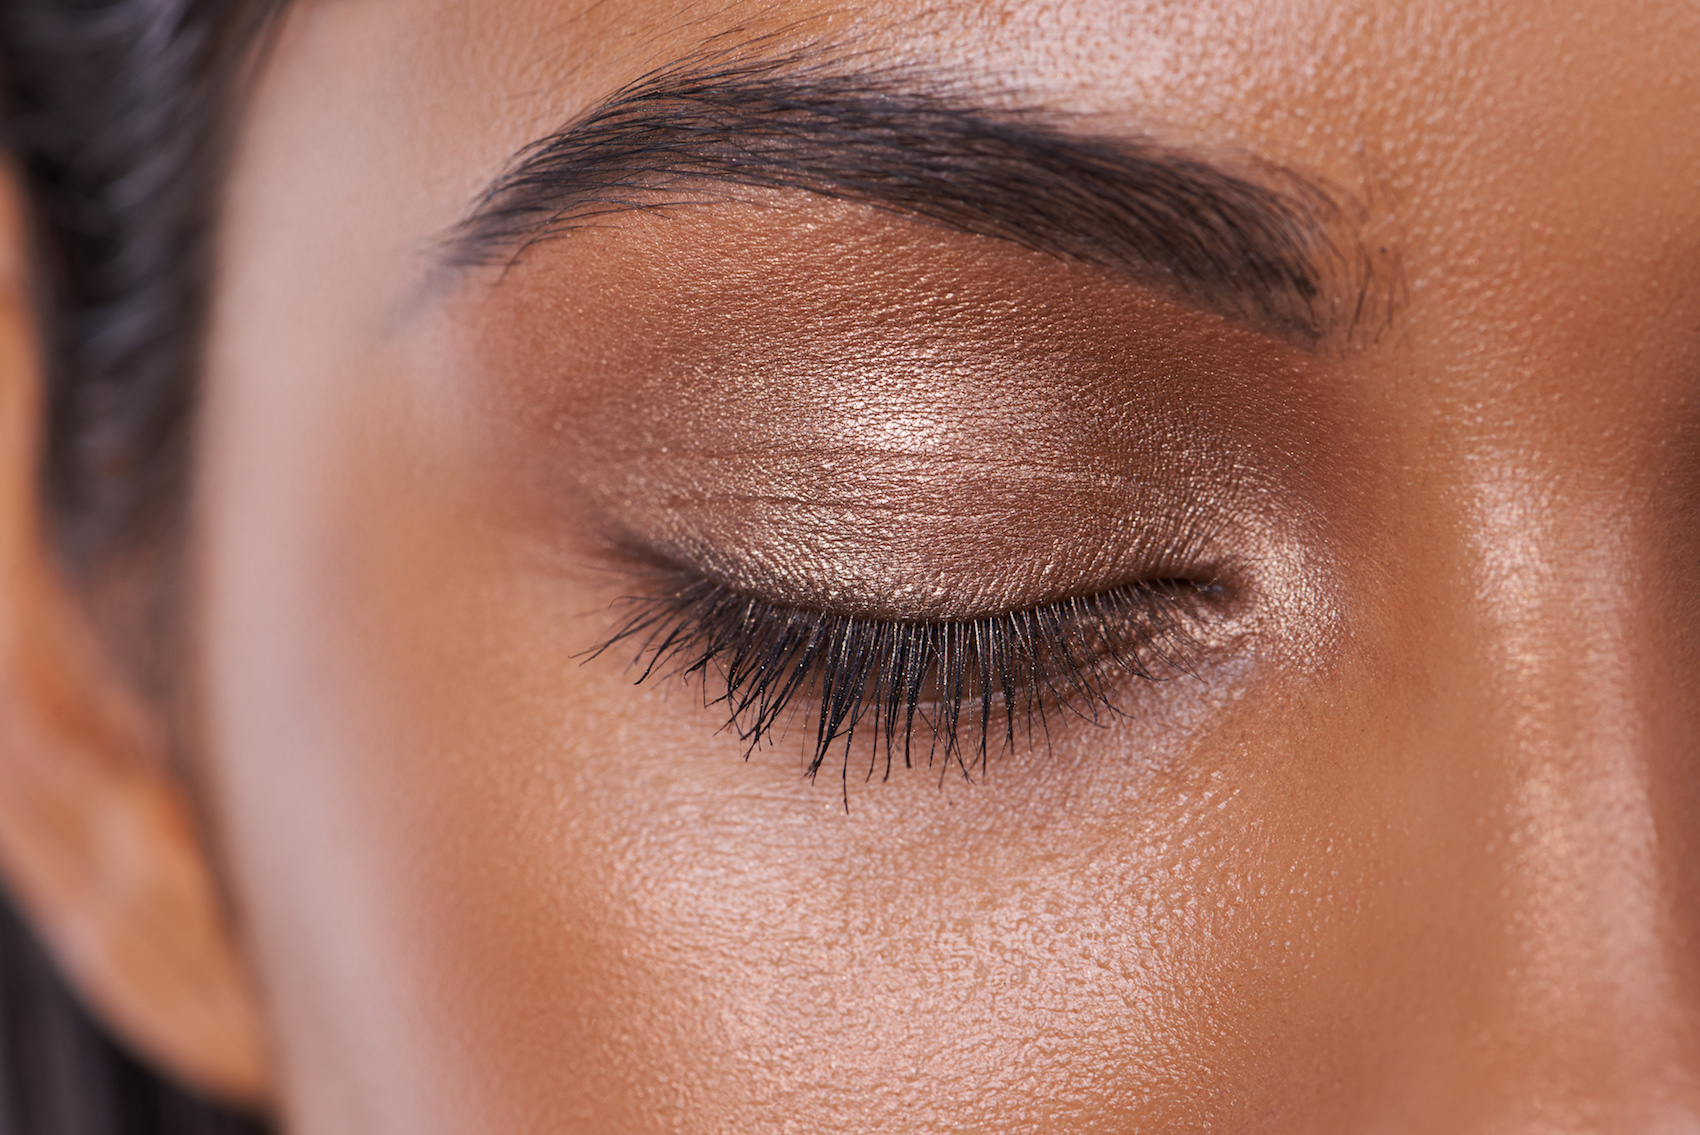 A close up of a woman's eyelids and eyebrow wearing shimmer makeup